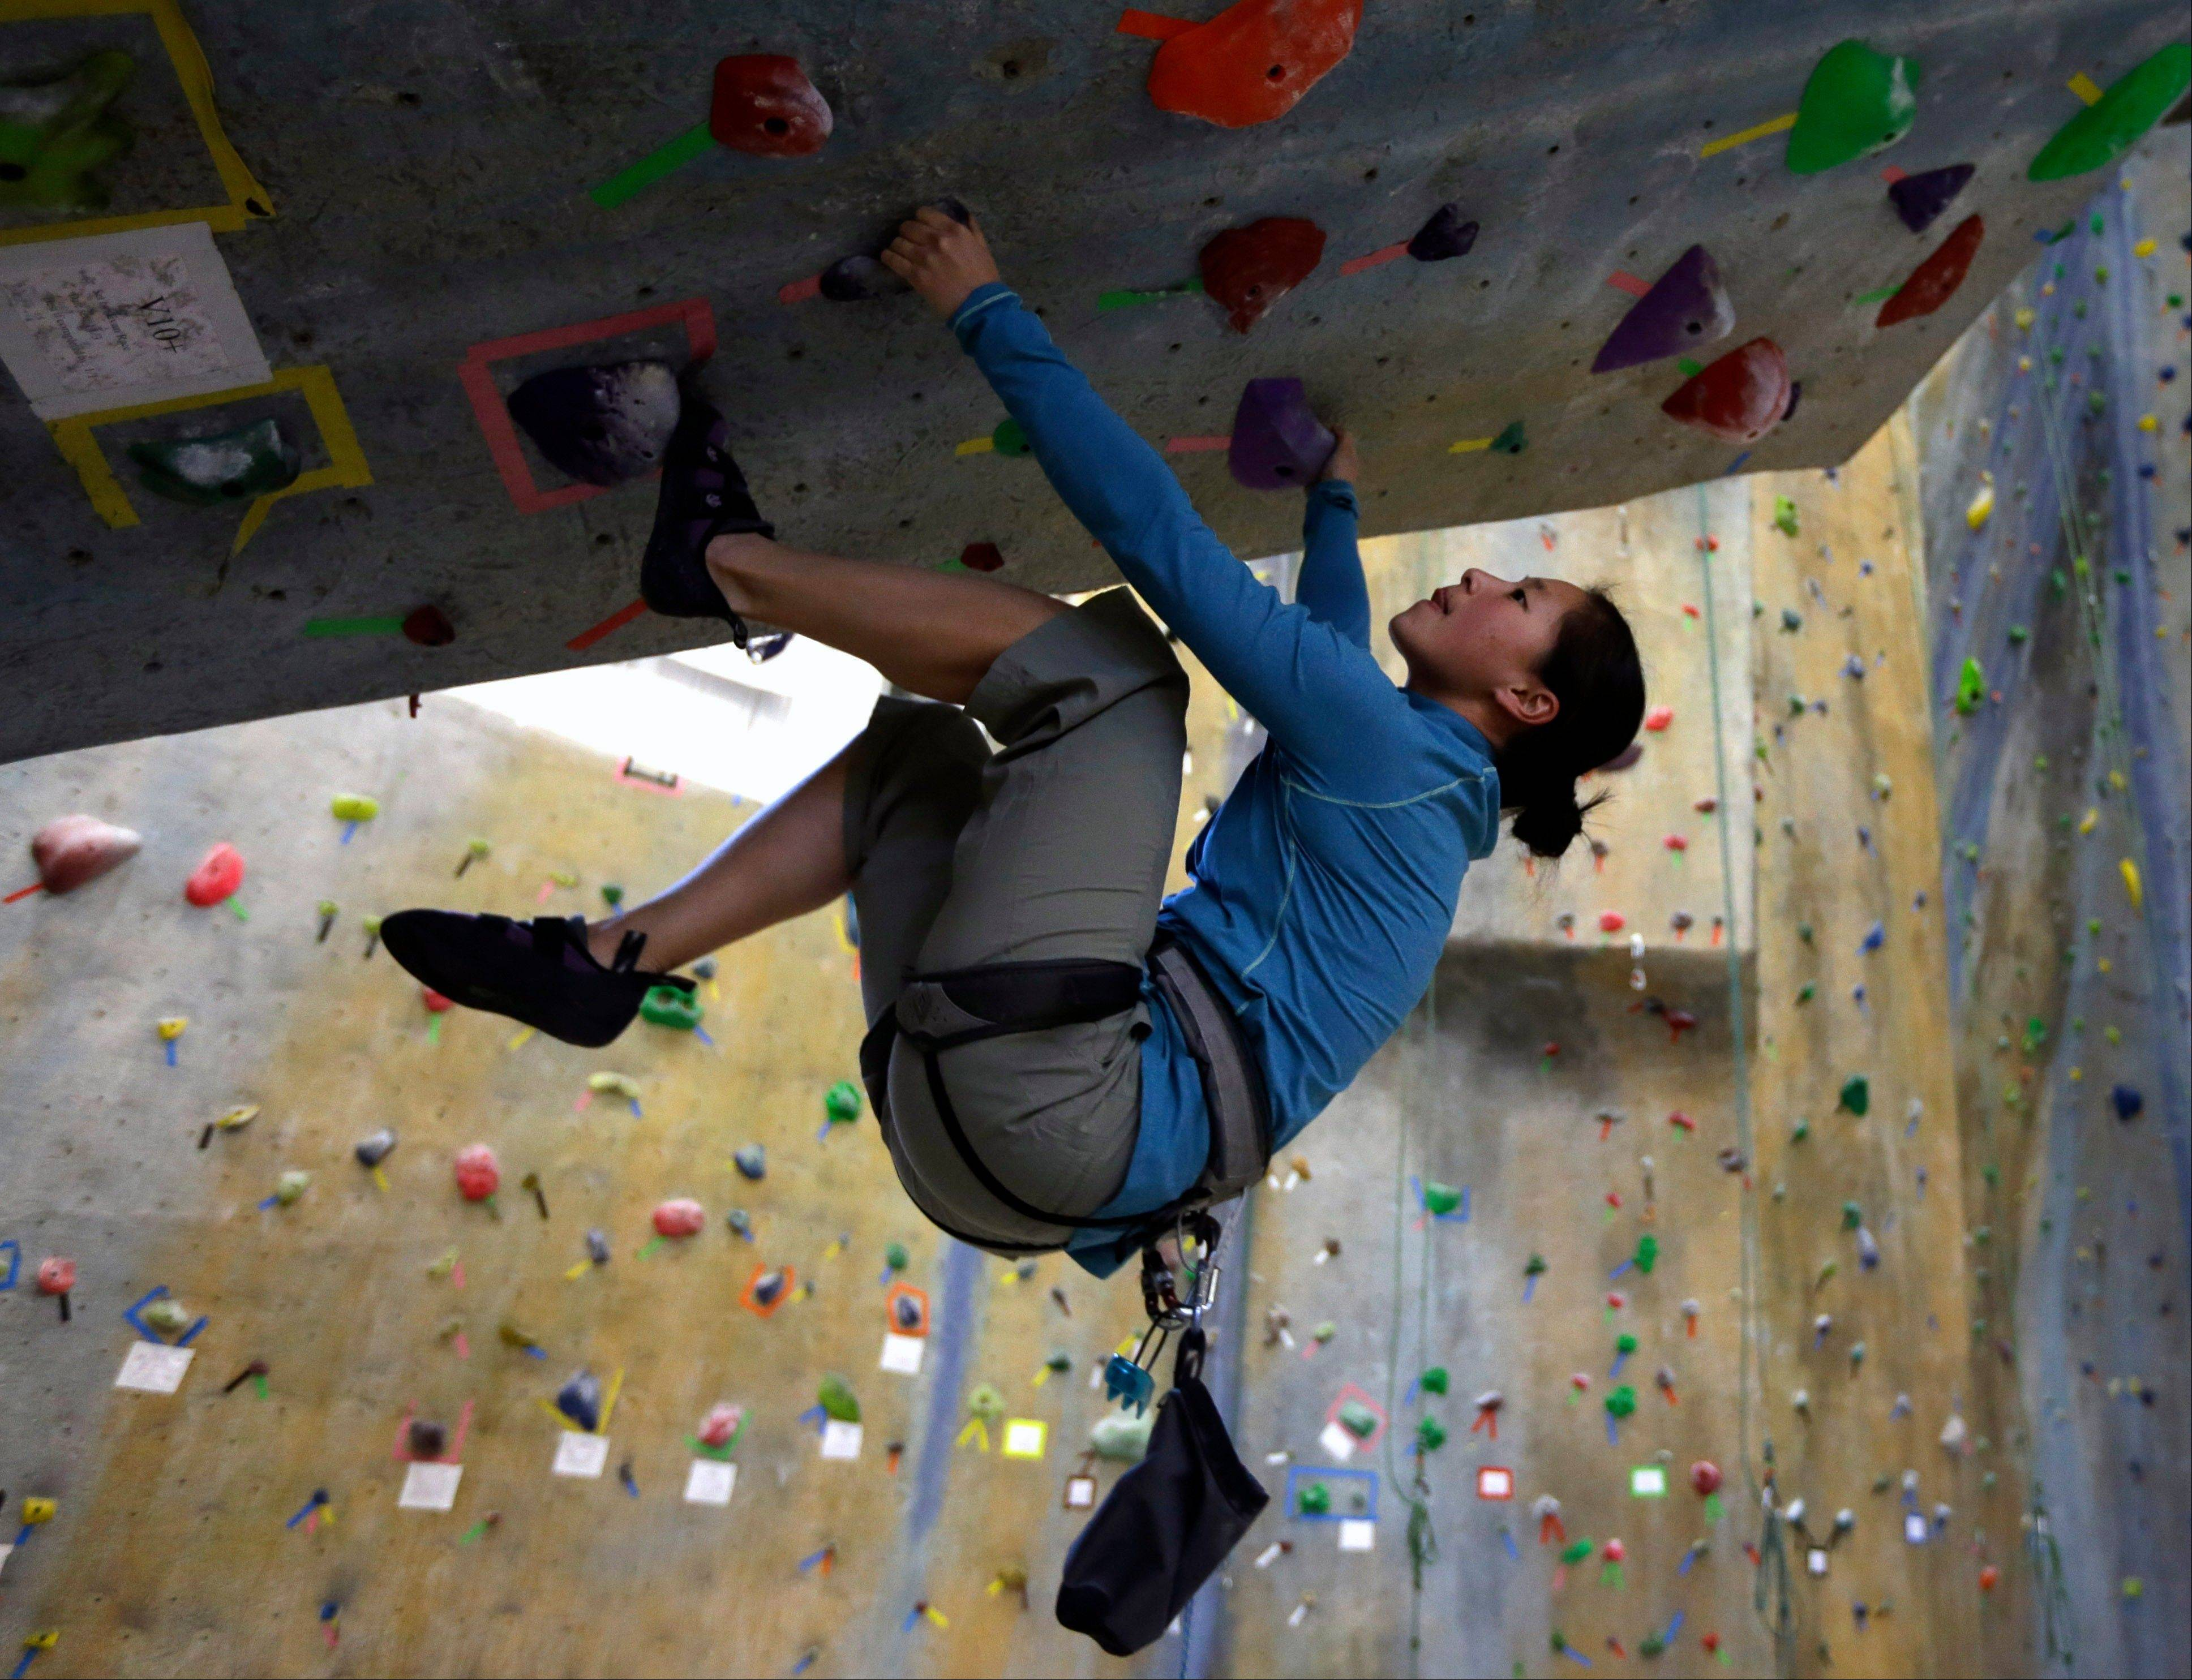 Helen Ho of Albany, N.Y., climbs a boulder at The Edge Halfmoon indoor climbing center in Halfmoon, N.Y. The design and the weeknight crowd at The Edge reflect two big trends in climbing: toward indoor gyms and low-elevation challenges that don't require a safety rope.